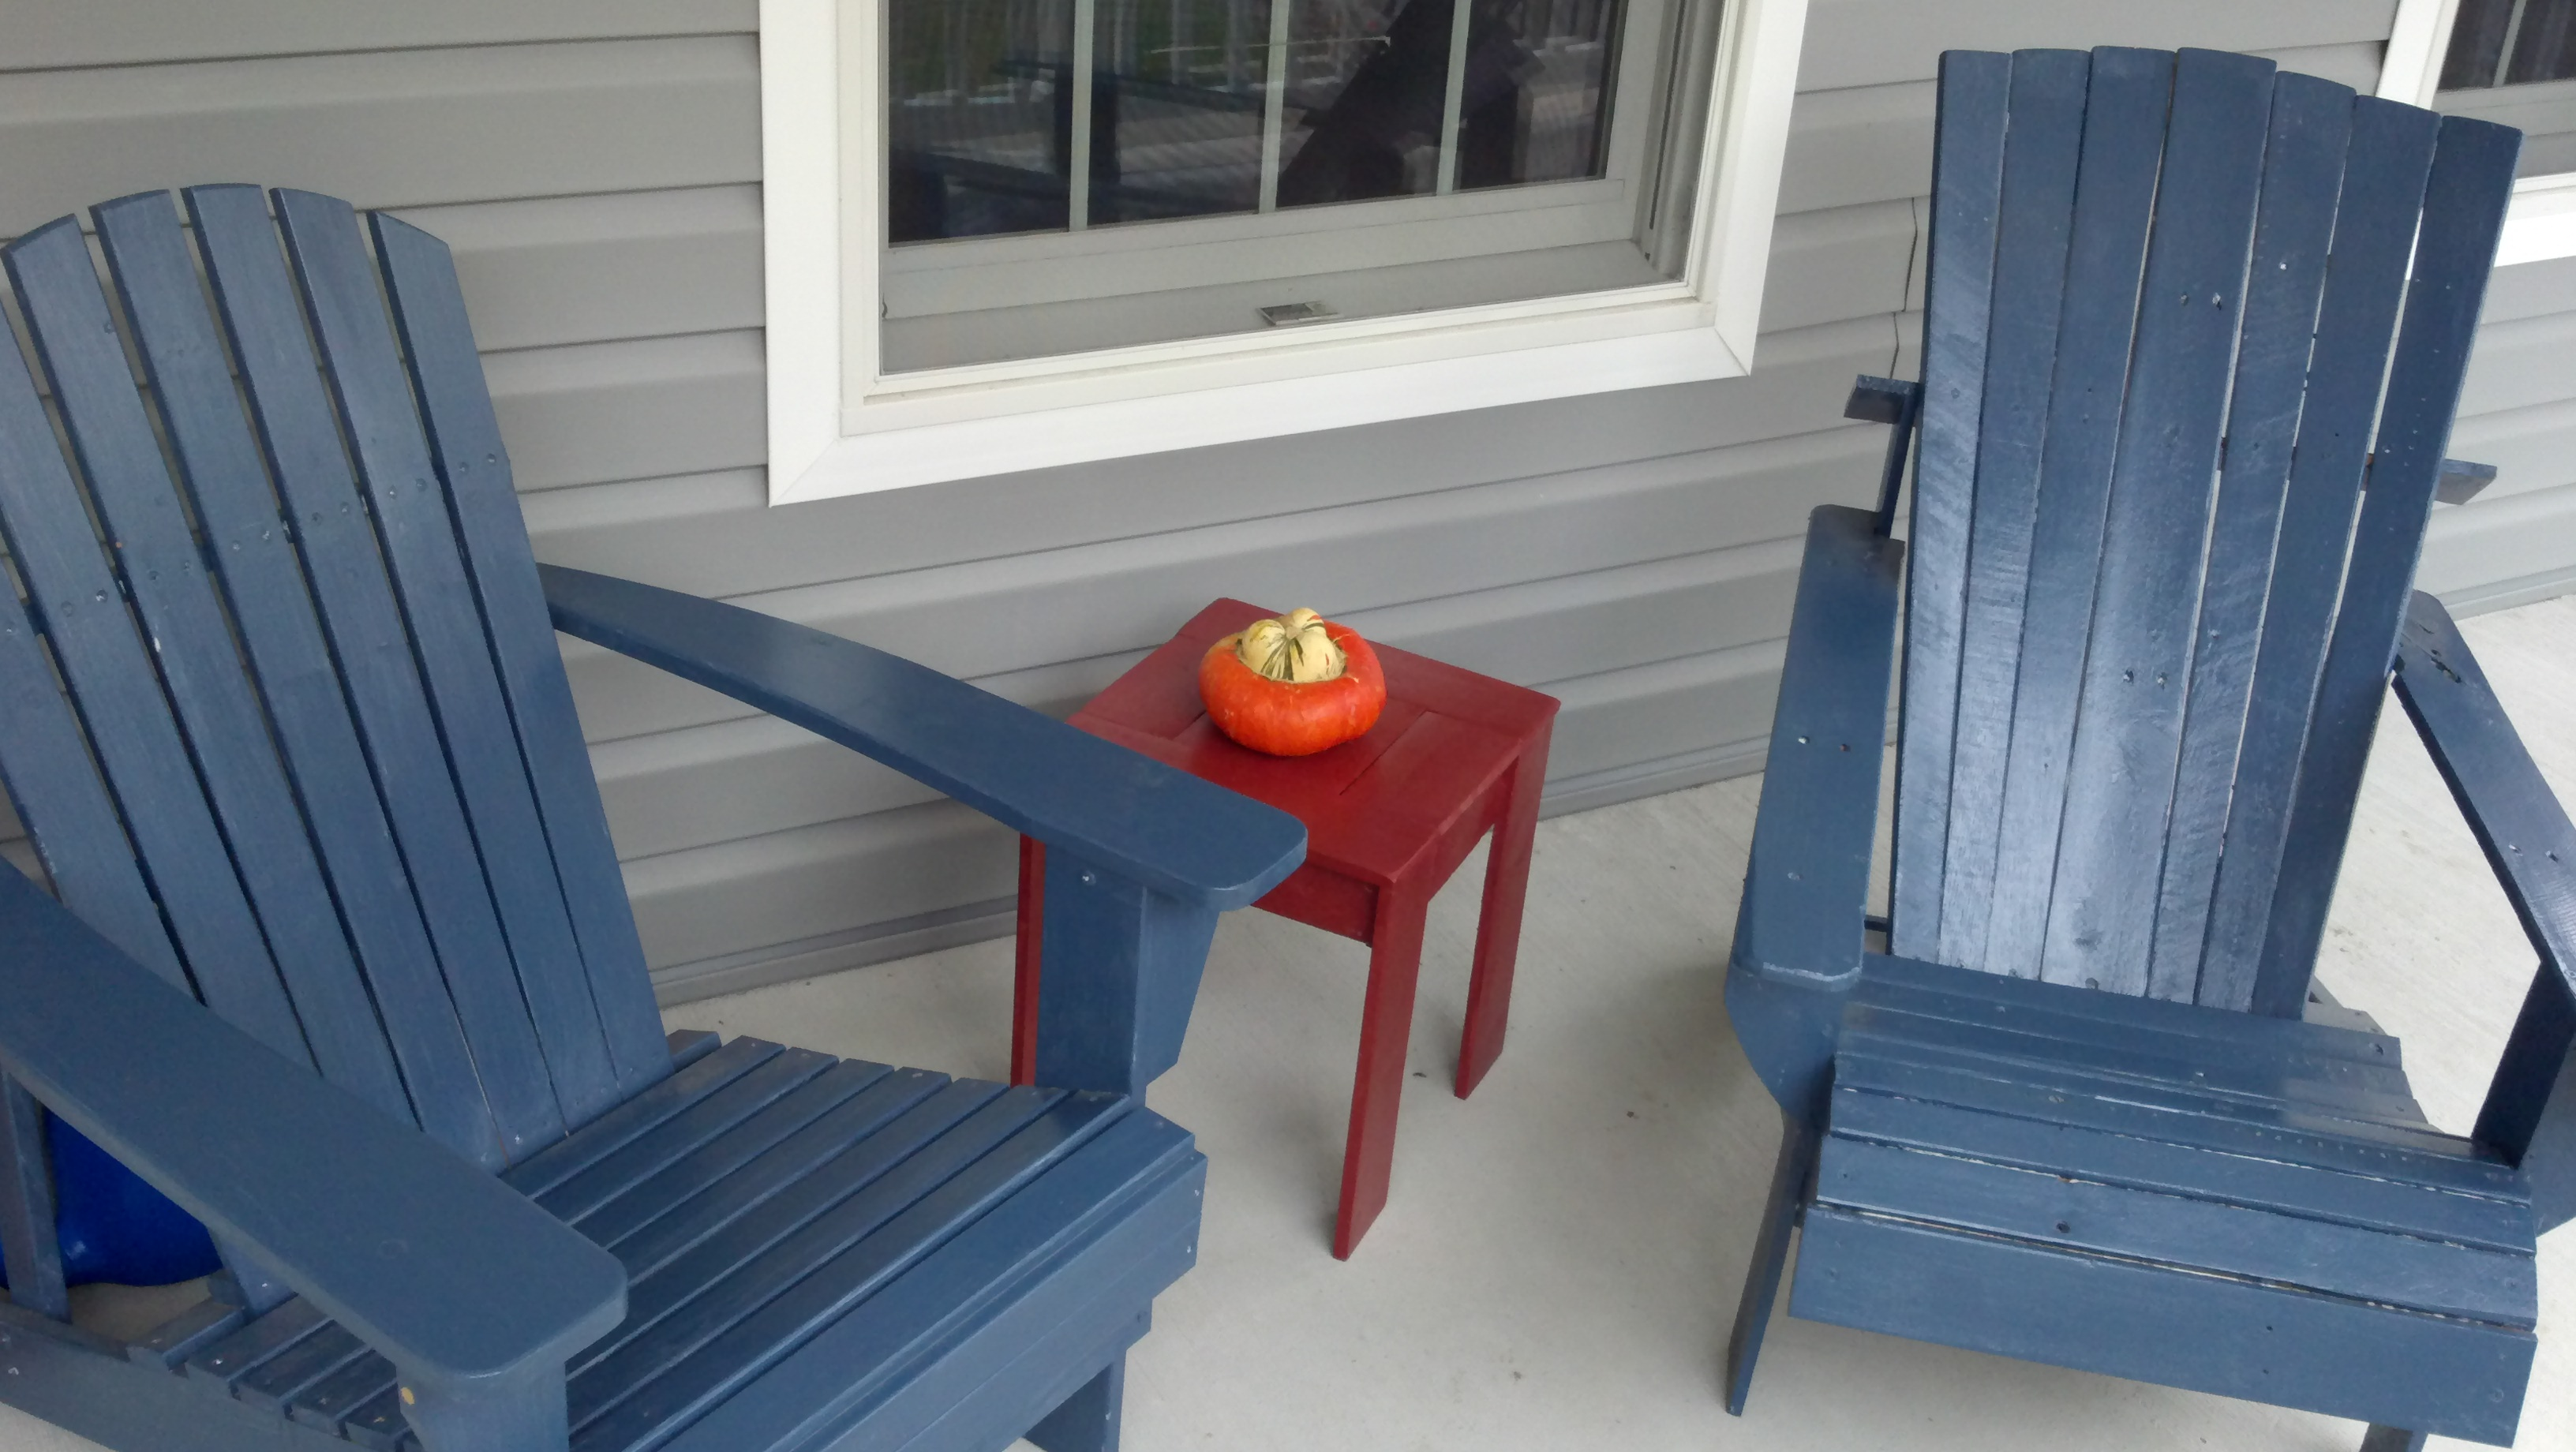 JOECULLIN Blog Archive Patio accent table made from pallet